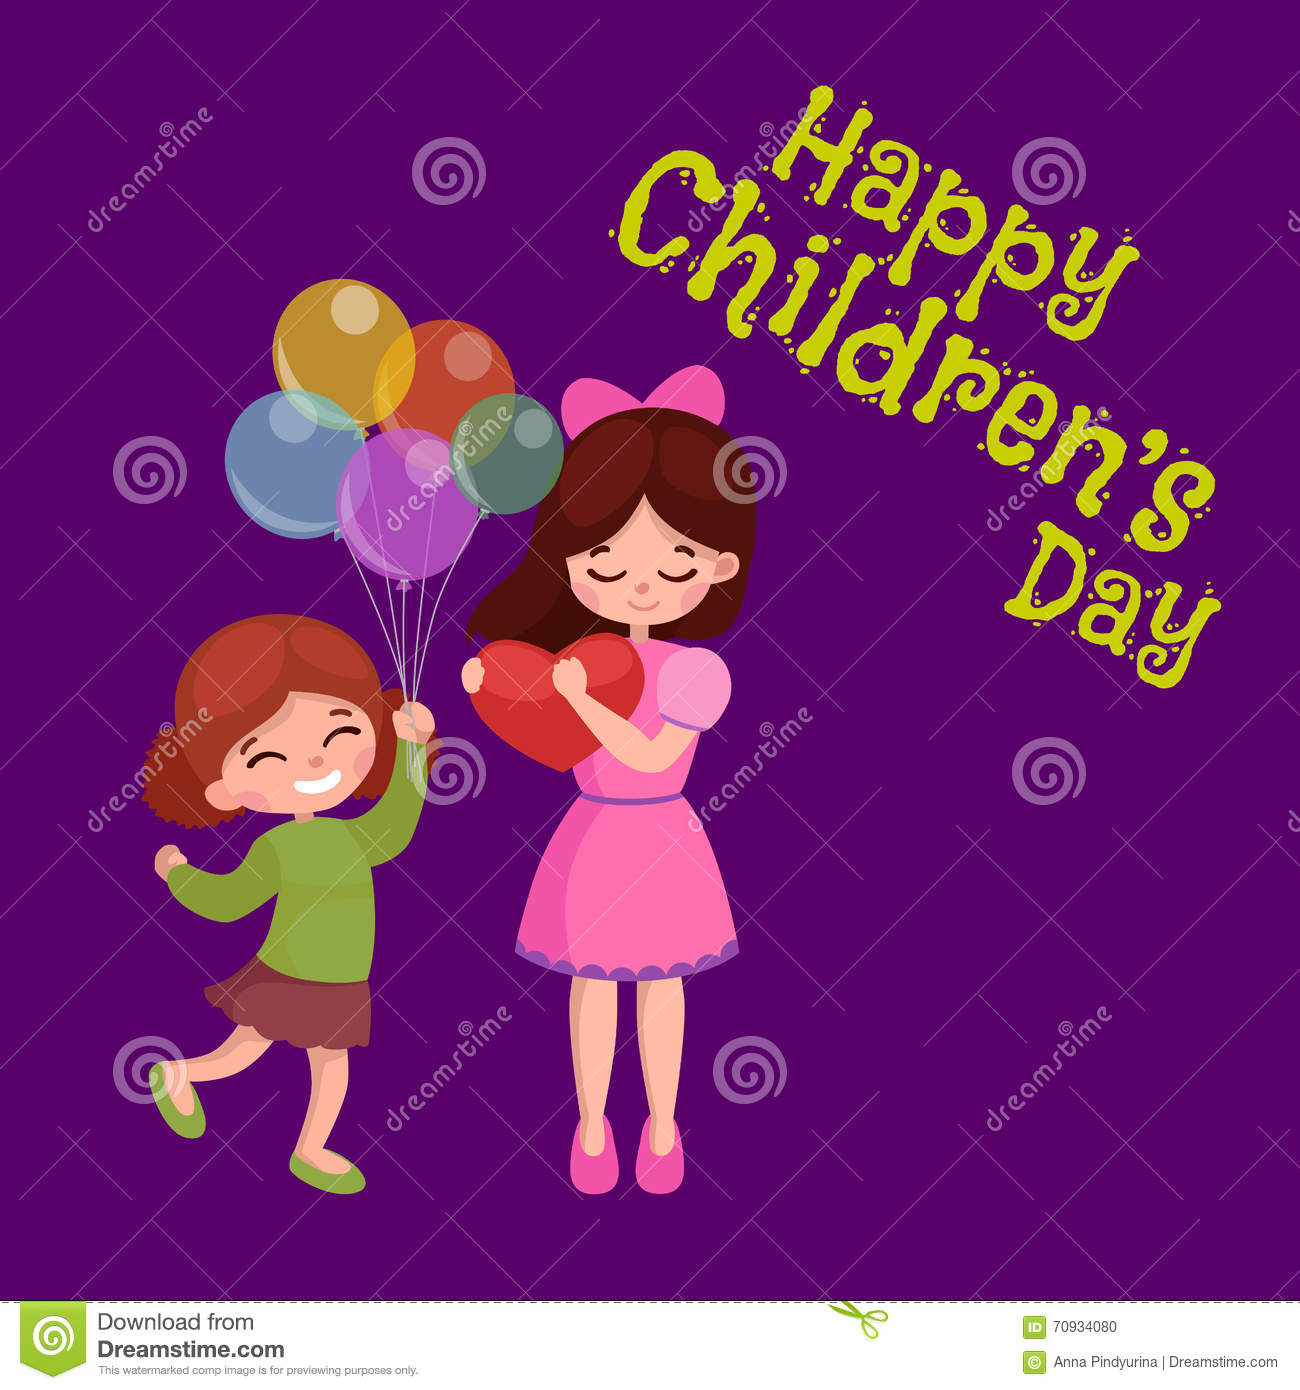 Vector illustration kids playing greeting card happy childrens day download comp m4hsunfo